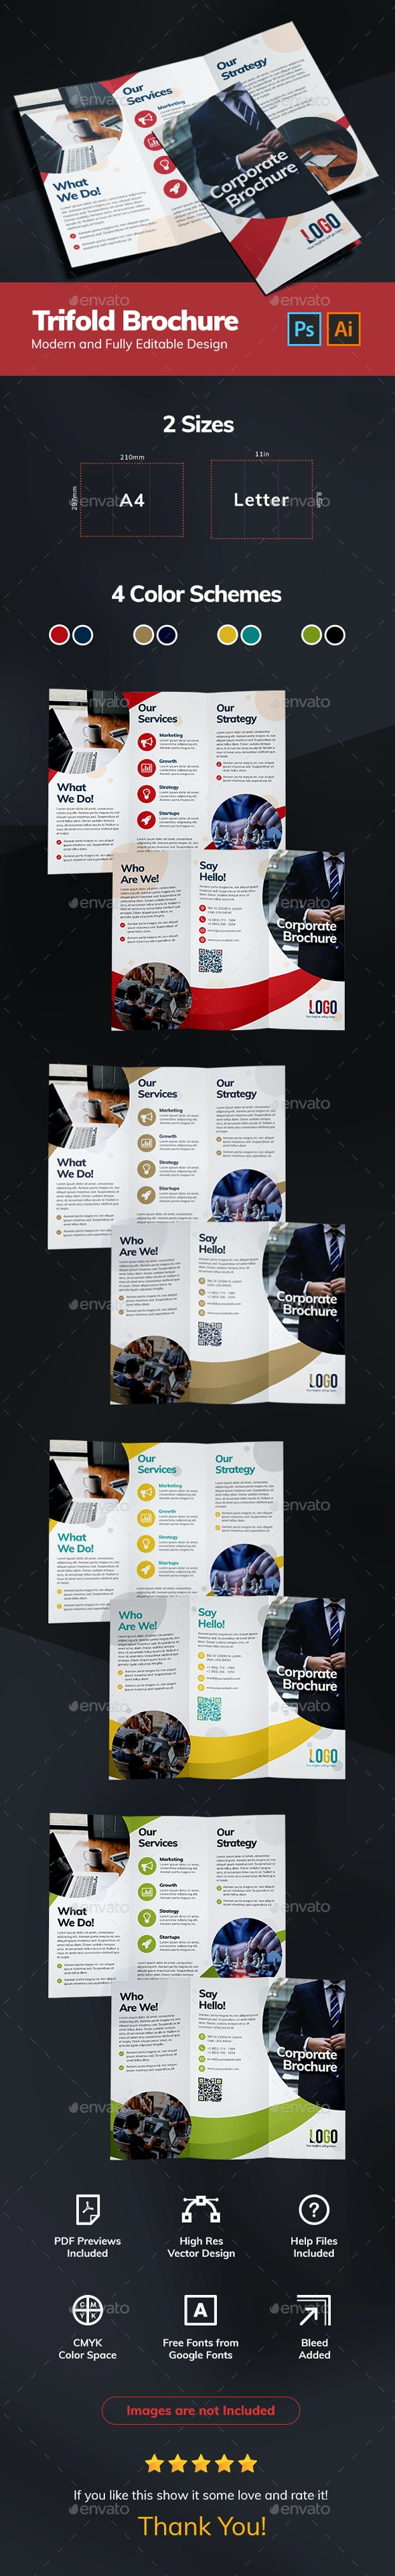 Creative Trifold Brochure - Brochures Print Templates